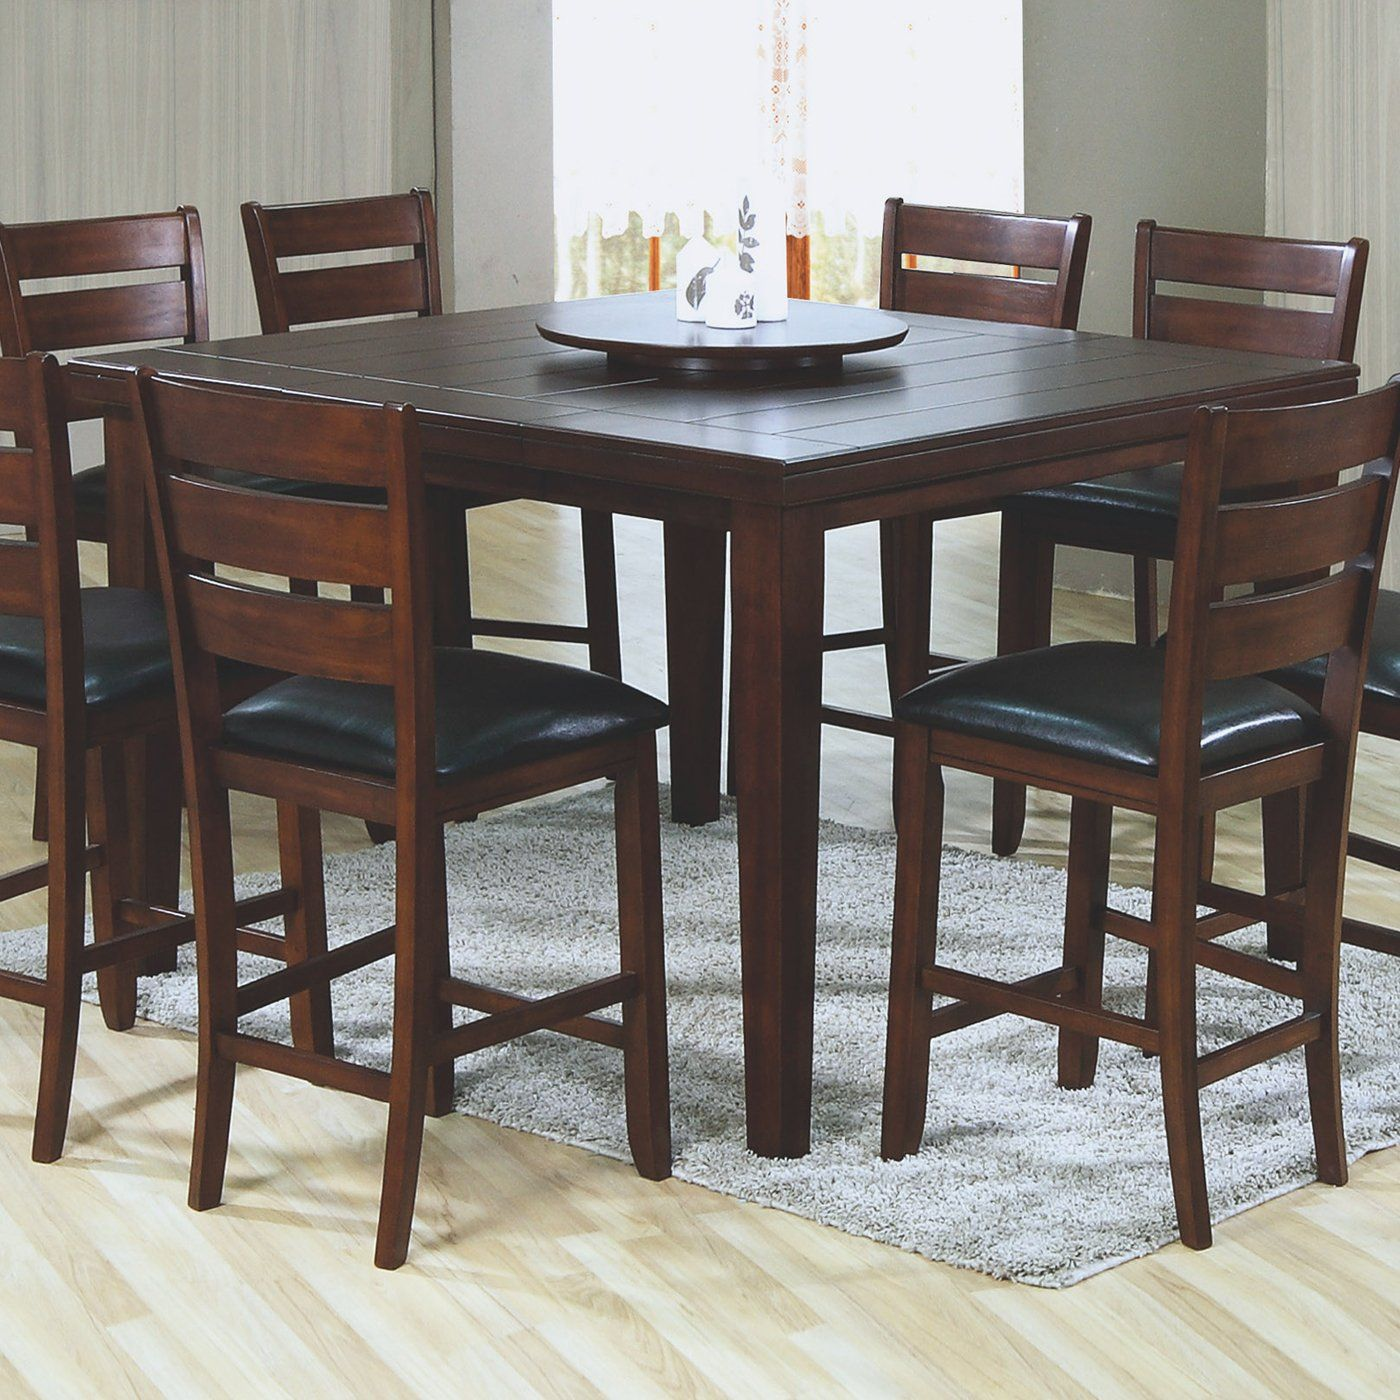 High Top Kitchen Tables Are In Kitchen Table Settings High Top